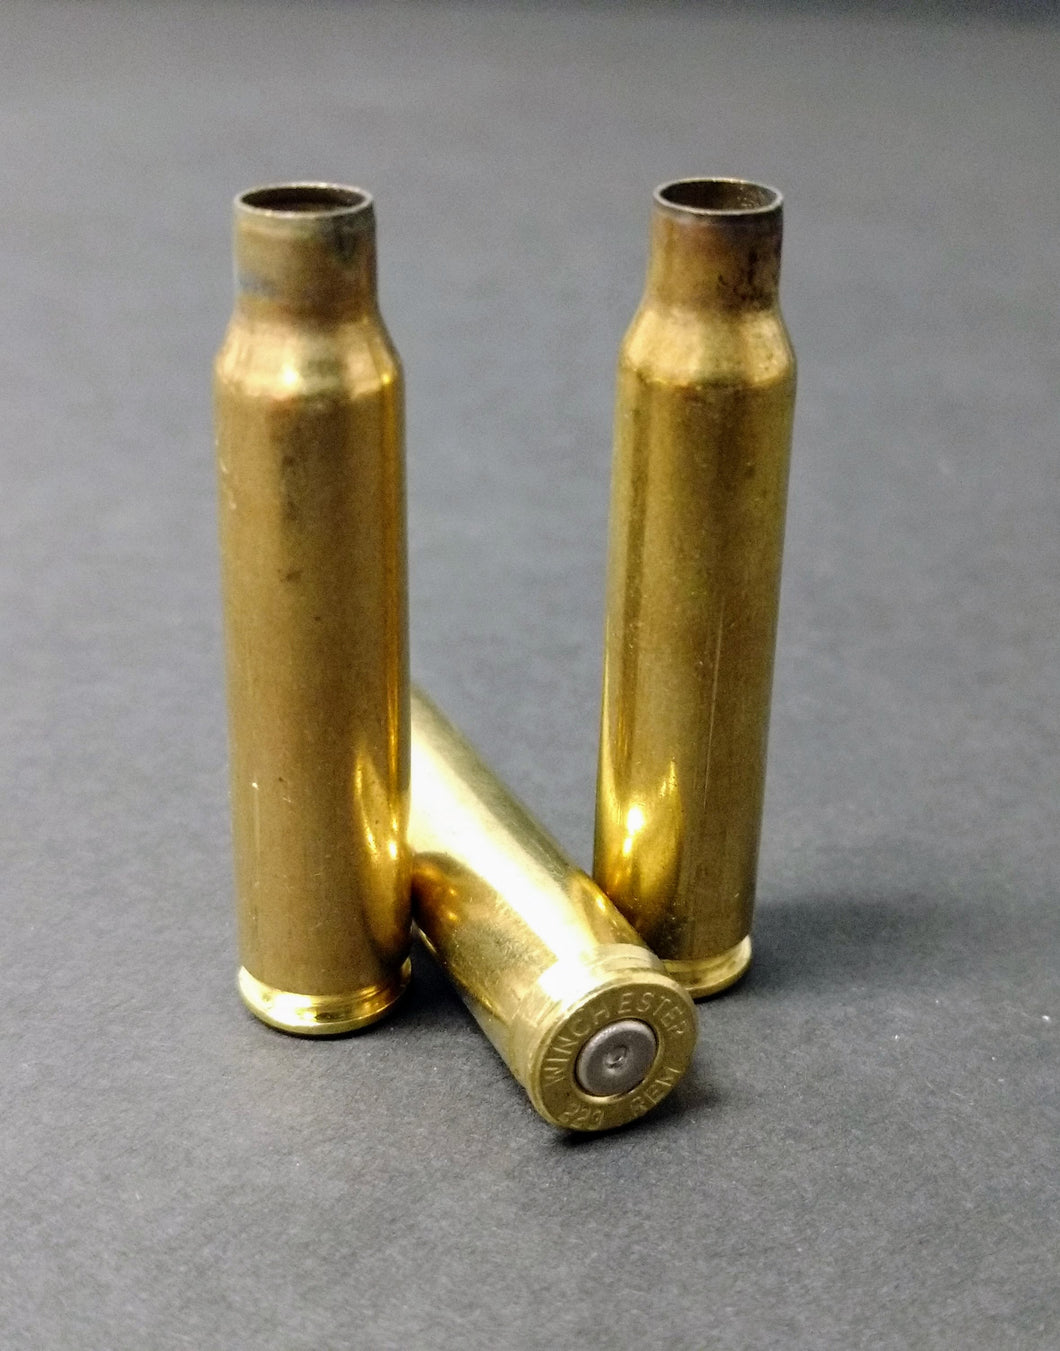 .223 Remington Mixed Headstamp Brass Cases